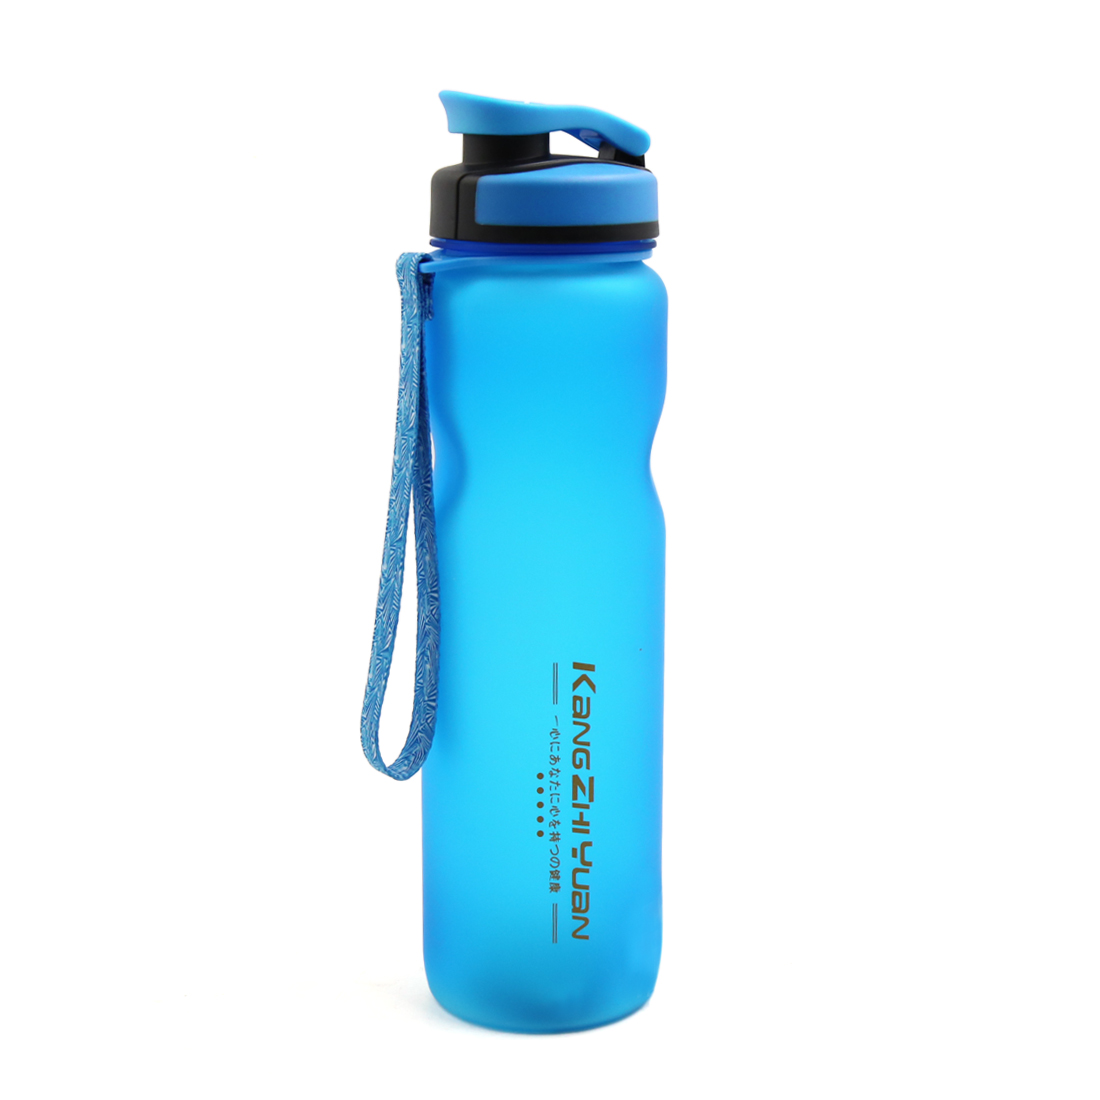 Blue Sports Drink Cup Traveling Water Bottle Healthy Plastic Large Size 36oz High Capacity